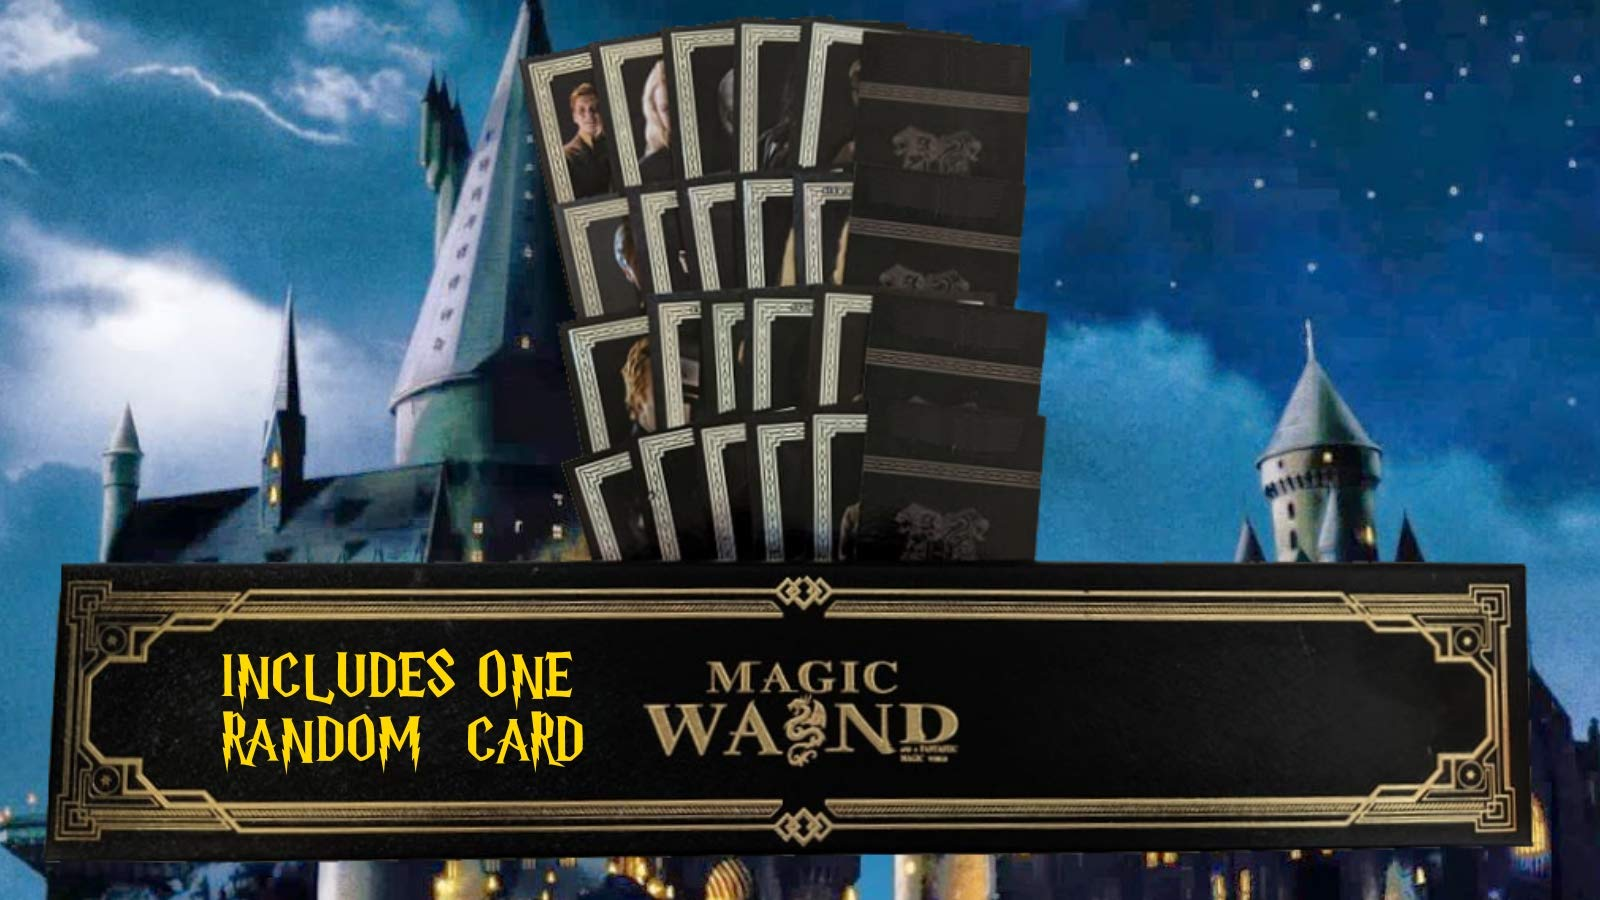 Cultured Customs Magical Wand Replicas - Steel Core Cosplay Prop Collectible + Free Bonus Collectible Trading Card (Ron)